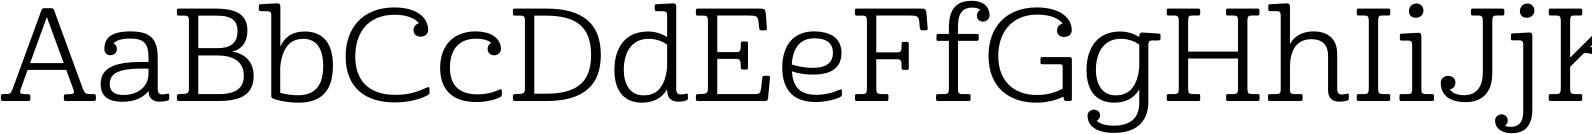 Cabrito Ext Regular Font